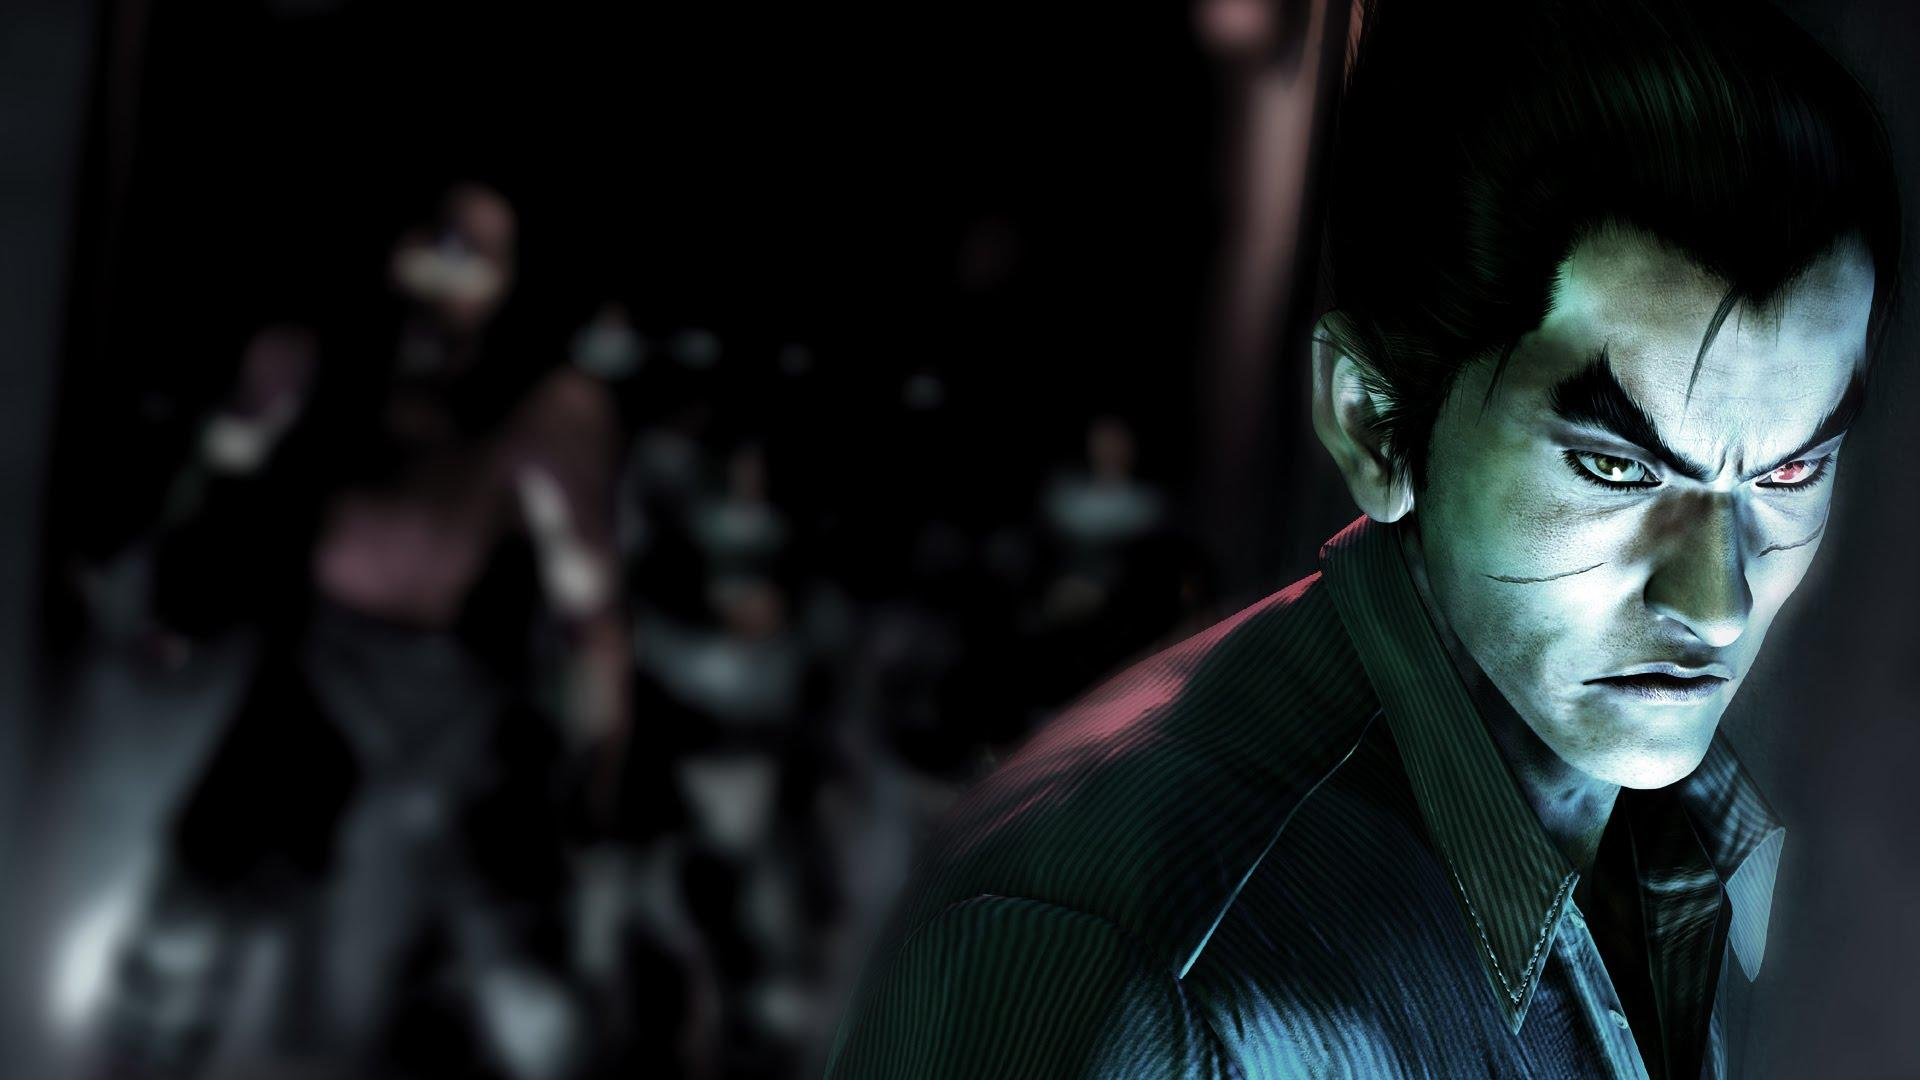 Download Kazuya Wallpaper(67+) - Free Desktop Backgrounds ...